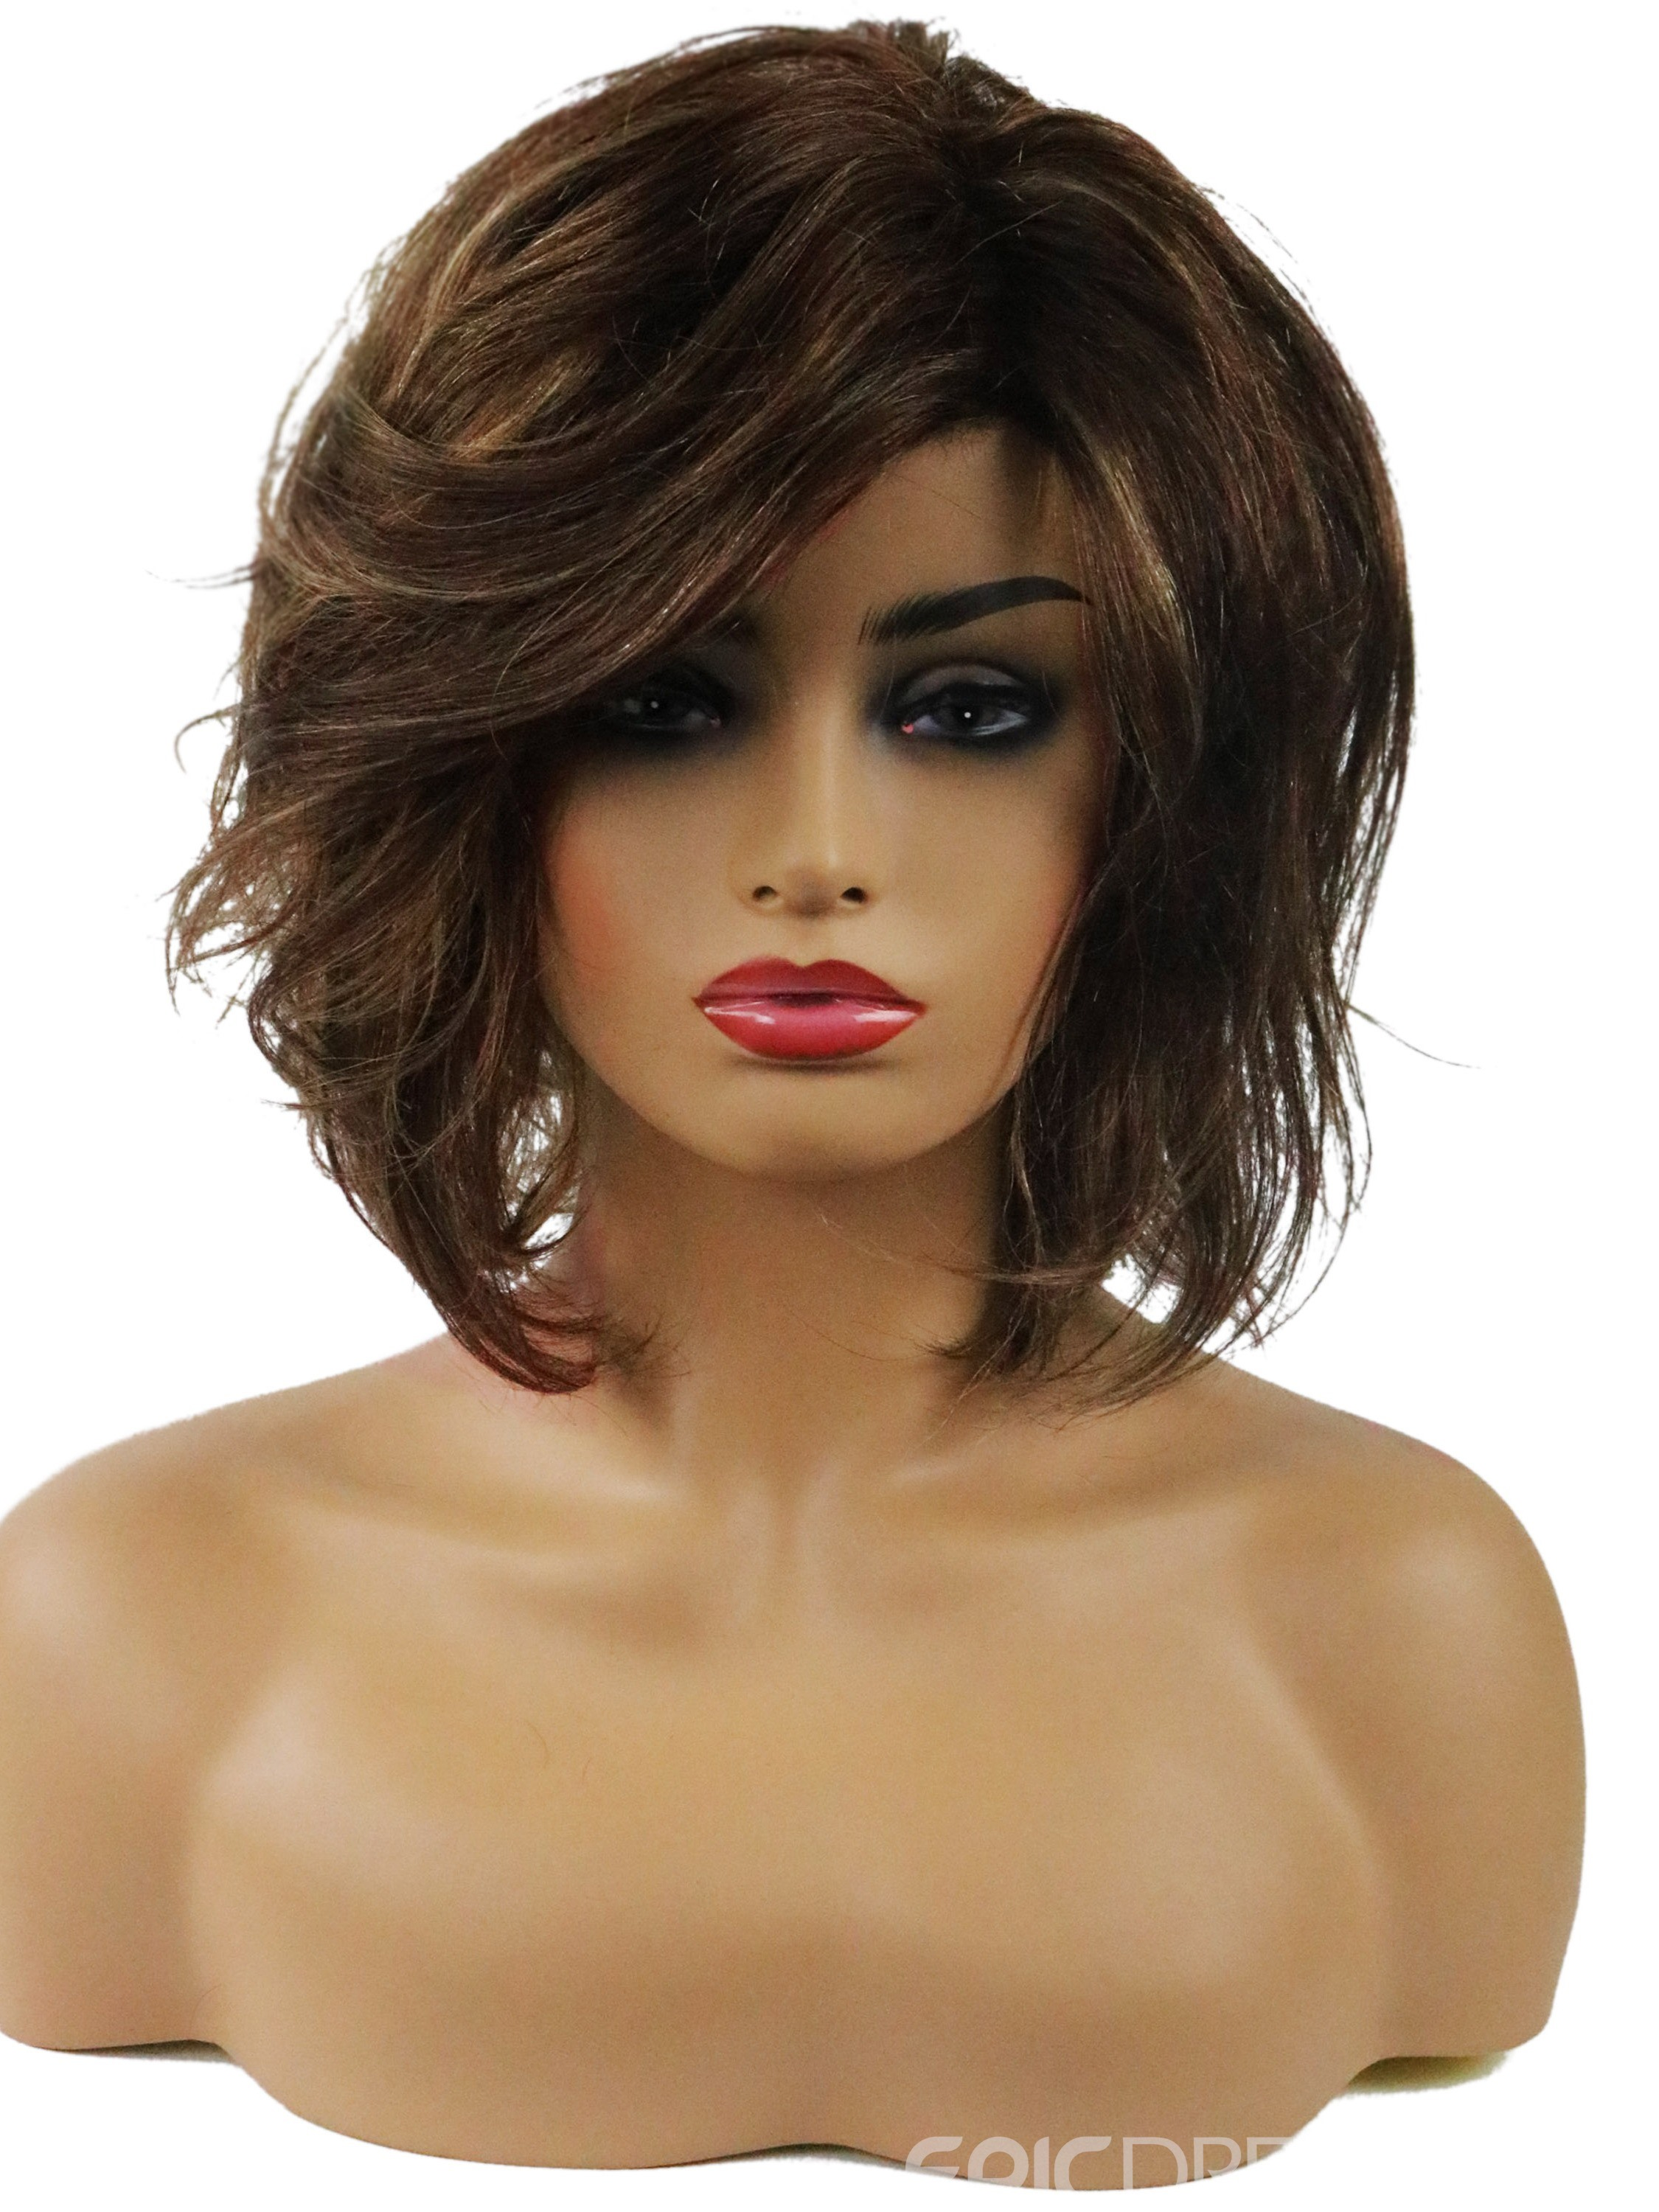 Ericdress Hot Loose Wave Side Swept Human Hair Women Capless Wigs 10 Inches